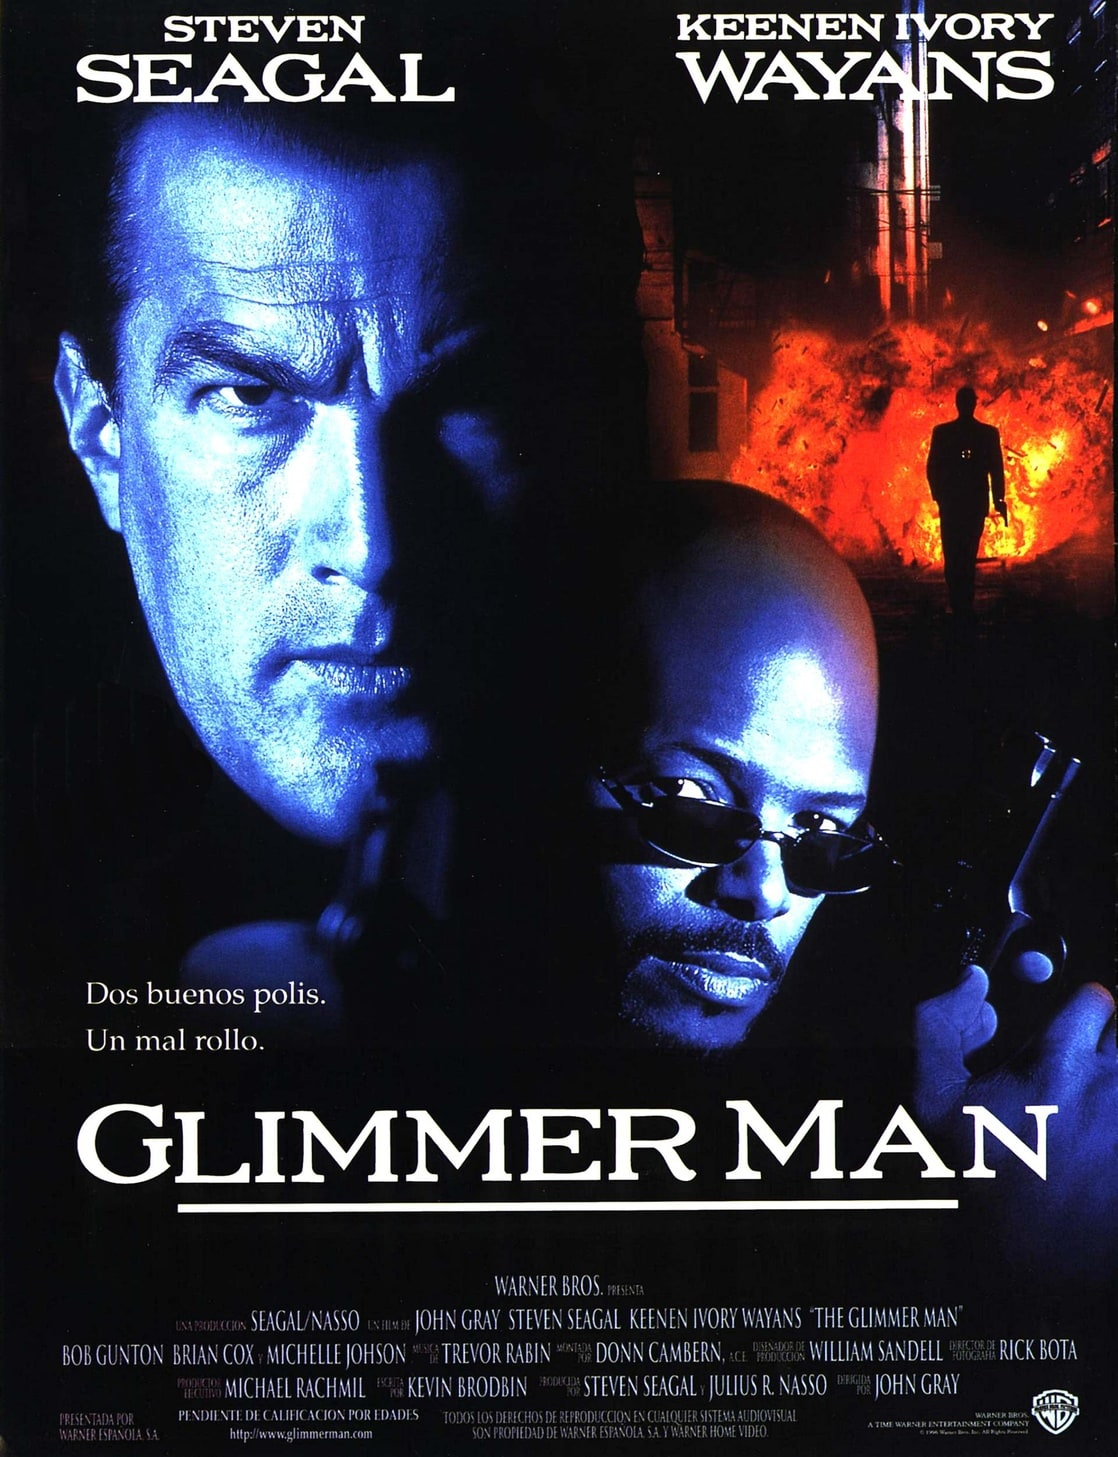 picture of the glimmer man